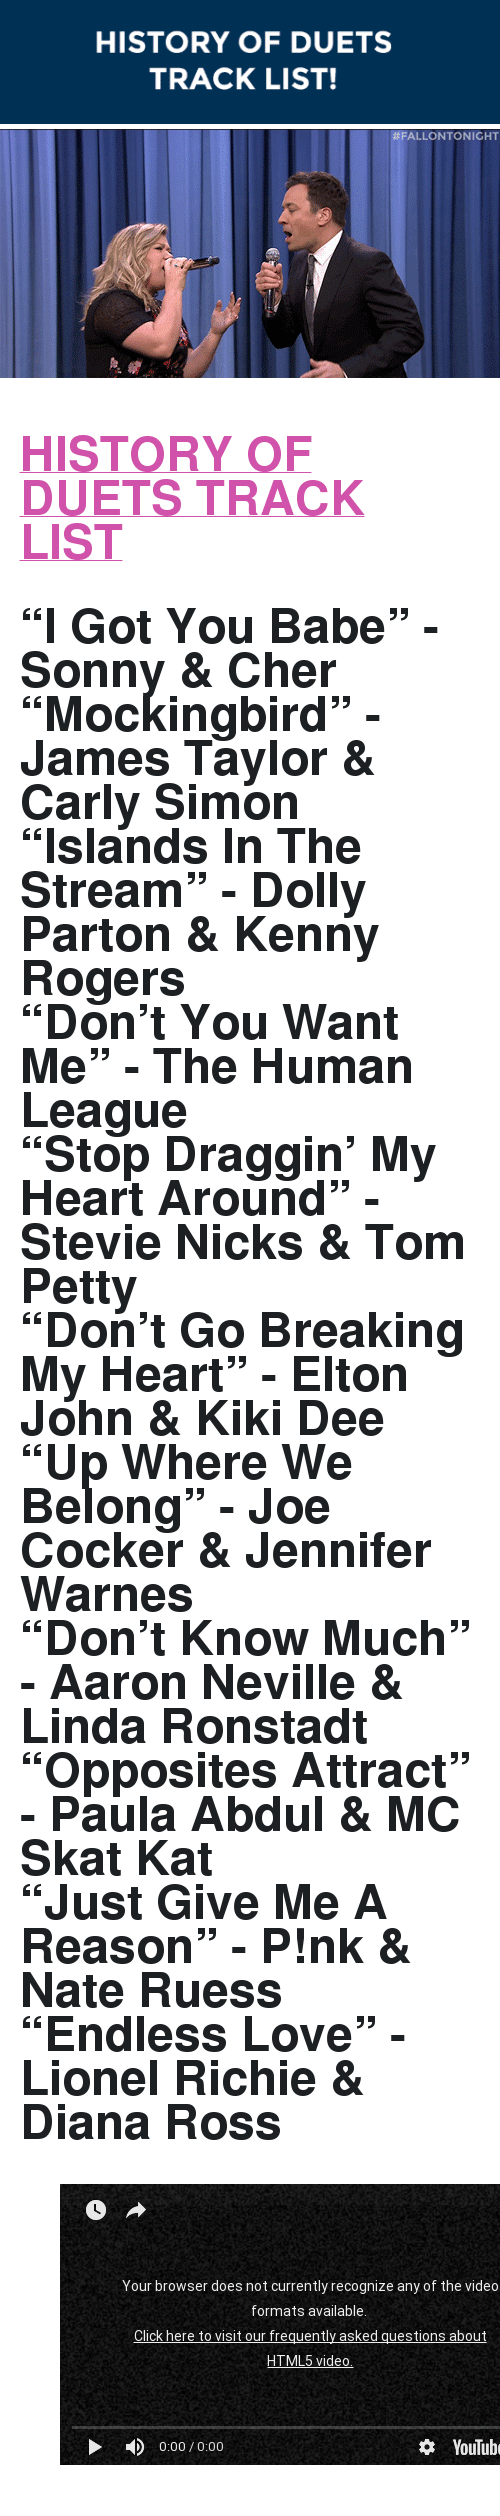 "tom petty: HISTORY OF DUETS  TRACK LIST!   <h2><b><a href=""https://www.youtube.com/watch?v=Df8MjNmNs-c&amp;list=UU8-Th83bH_thdKZDJCrn88g"" target=""_blank"">HISTORY OF DUETS TRACK LIST</a></b></h2><h2>&ldquo;I Got You Babe&rdquo; - Sonny &amp; Cher<br/>&ldquo;Mockingbird&rdquo; - James Taylor &amp; Carly Simon<br/>&ldquo;Islands In The Stream&rdquo; - Dolly Parton &amp; Kenny Rogers<br/>&ldquo;Don&rsquo;t You Want Me&rdquo; - The Human League<br/>&ldquo;Stop Draggin&rsquo; My Heart Around&rdquo; - Stevie Nicks &amp; Tom Petty<br/>&ldquo;Don&rsquo;t Go Breaking My Heart&rdquo; - Elton John &amp; Kiki Dee<br/>&ldquo;Up Where We Belong&rdquo; - Joe Cocker &amp; Jennifer Warnes<br/>&ldquo;Don&rsquo;t Know Much&rdquo; - Aaron Neville &amp; Linda Ronstadt<br/>&ldquo;Opposites Attract&rdquo; - Paula Abdul &amp; MC Skat Kat<br/>&ldquo;Just Give Me A Reason&rdquo; - P!nk &amp; Nate Ruess<br/>&ldquo;Endless Love&rdquo; - Lionel Richie &amp; Diana Ross</h2><figure class=""tmblr-embed"" data-provider=""youtube"" data-orig-width=""540"" data-orig-height=""304"" data-url=""https%3A%2F%2Fwww.youtube.com%2Fwatch%3Fv%3DDf8MjNmNs-c%26list%3DUU8-Th83bH_thdKZDJCrn88g""><iframe width=""500"" height=""281"" id=""youtube_iframe"" src=""https://www.youtube.com/embed/Df8MjNmNs-c?feature=oembed&amp;enablejsapi=1&amp;origin=https://safe.txmblr.com&amp;wmode=opaque"" frameborder=""0"" allowfullscreen=""""></iframe></figure>"